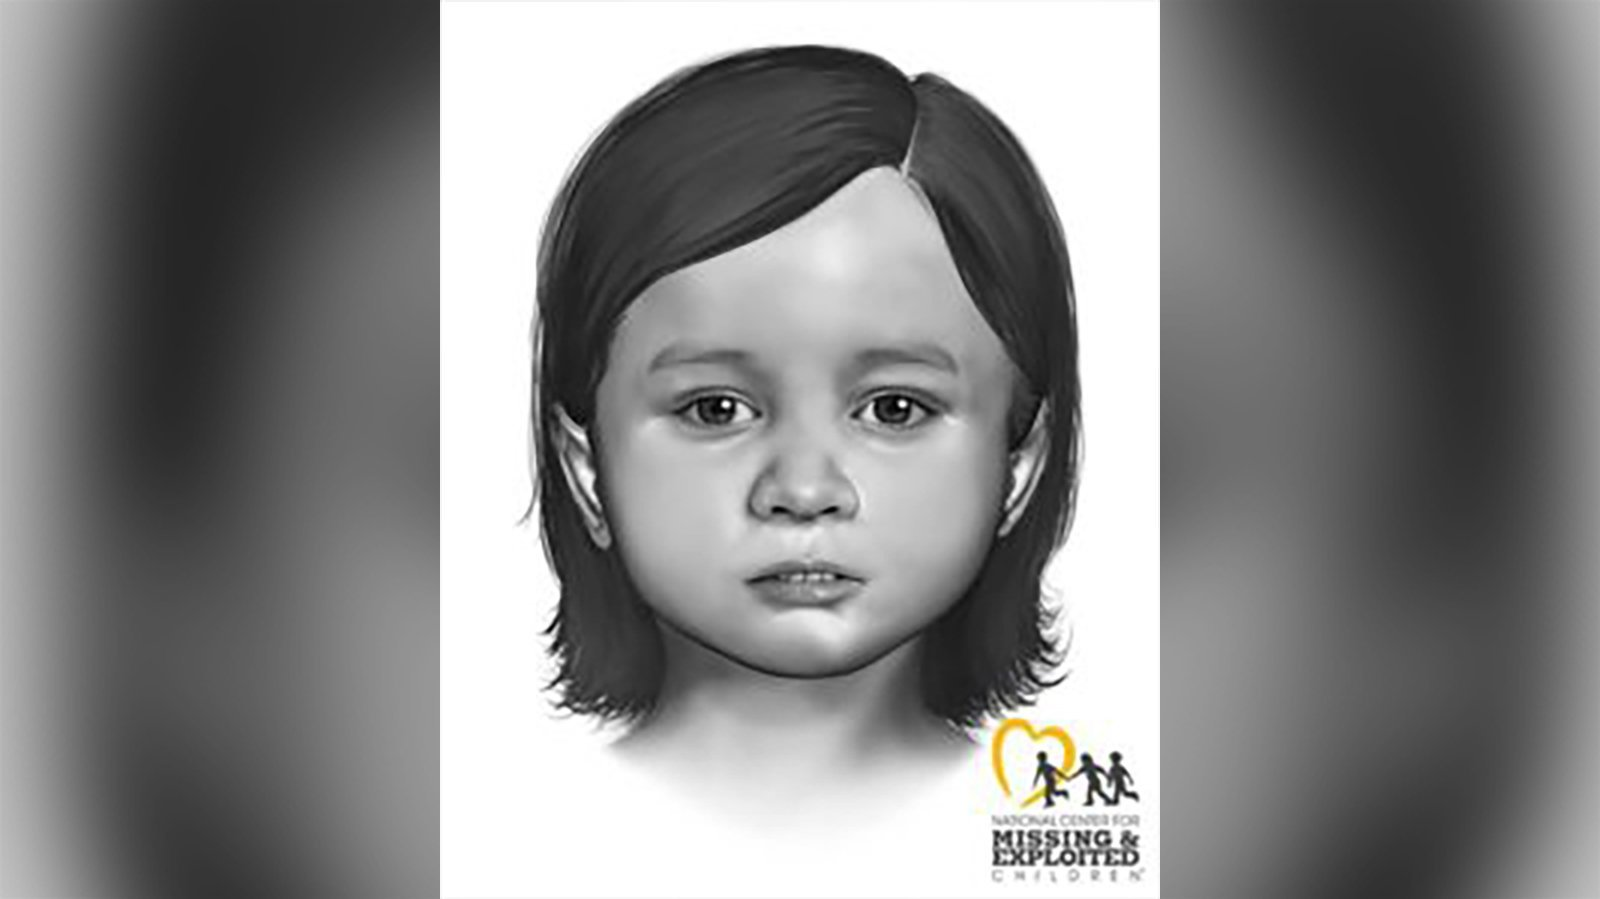 Police release reconstructed images of a young girl's face 2 months after her body was found